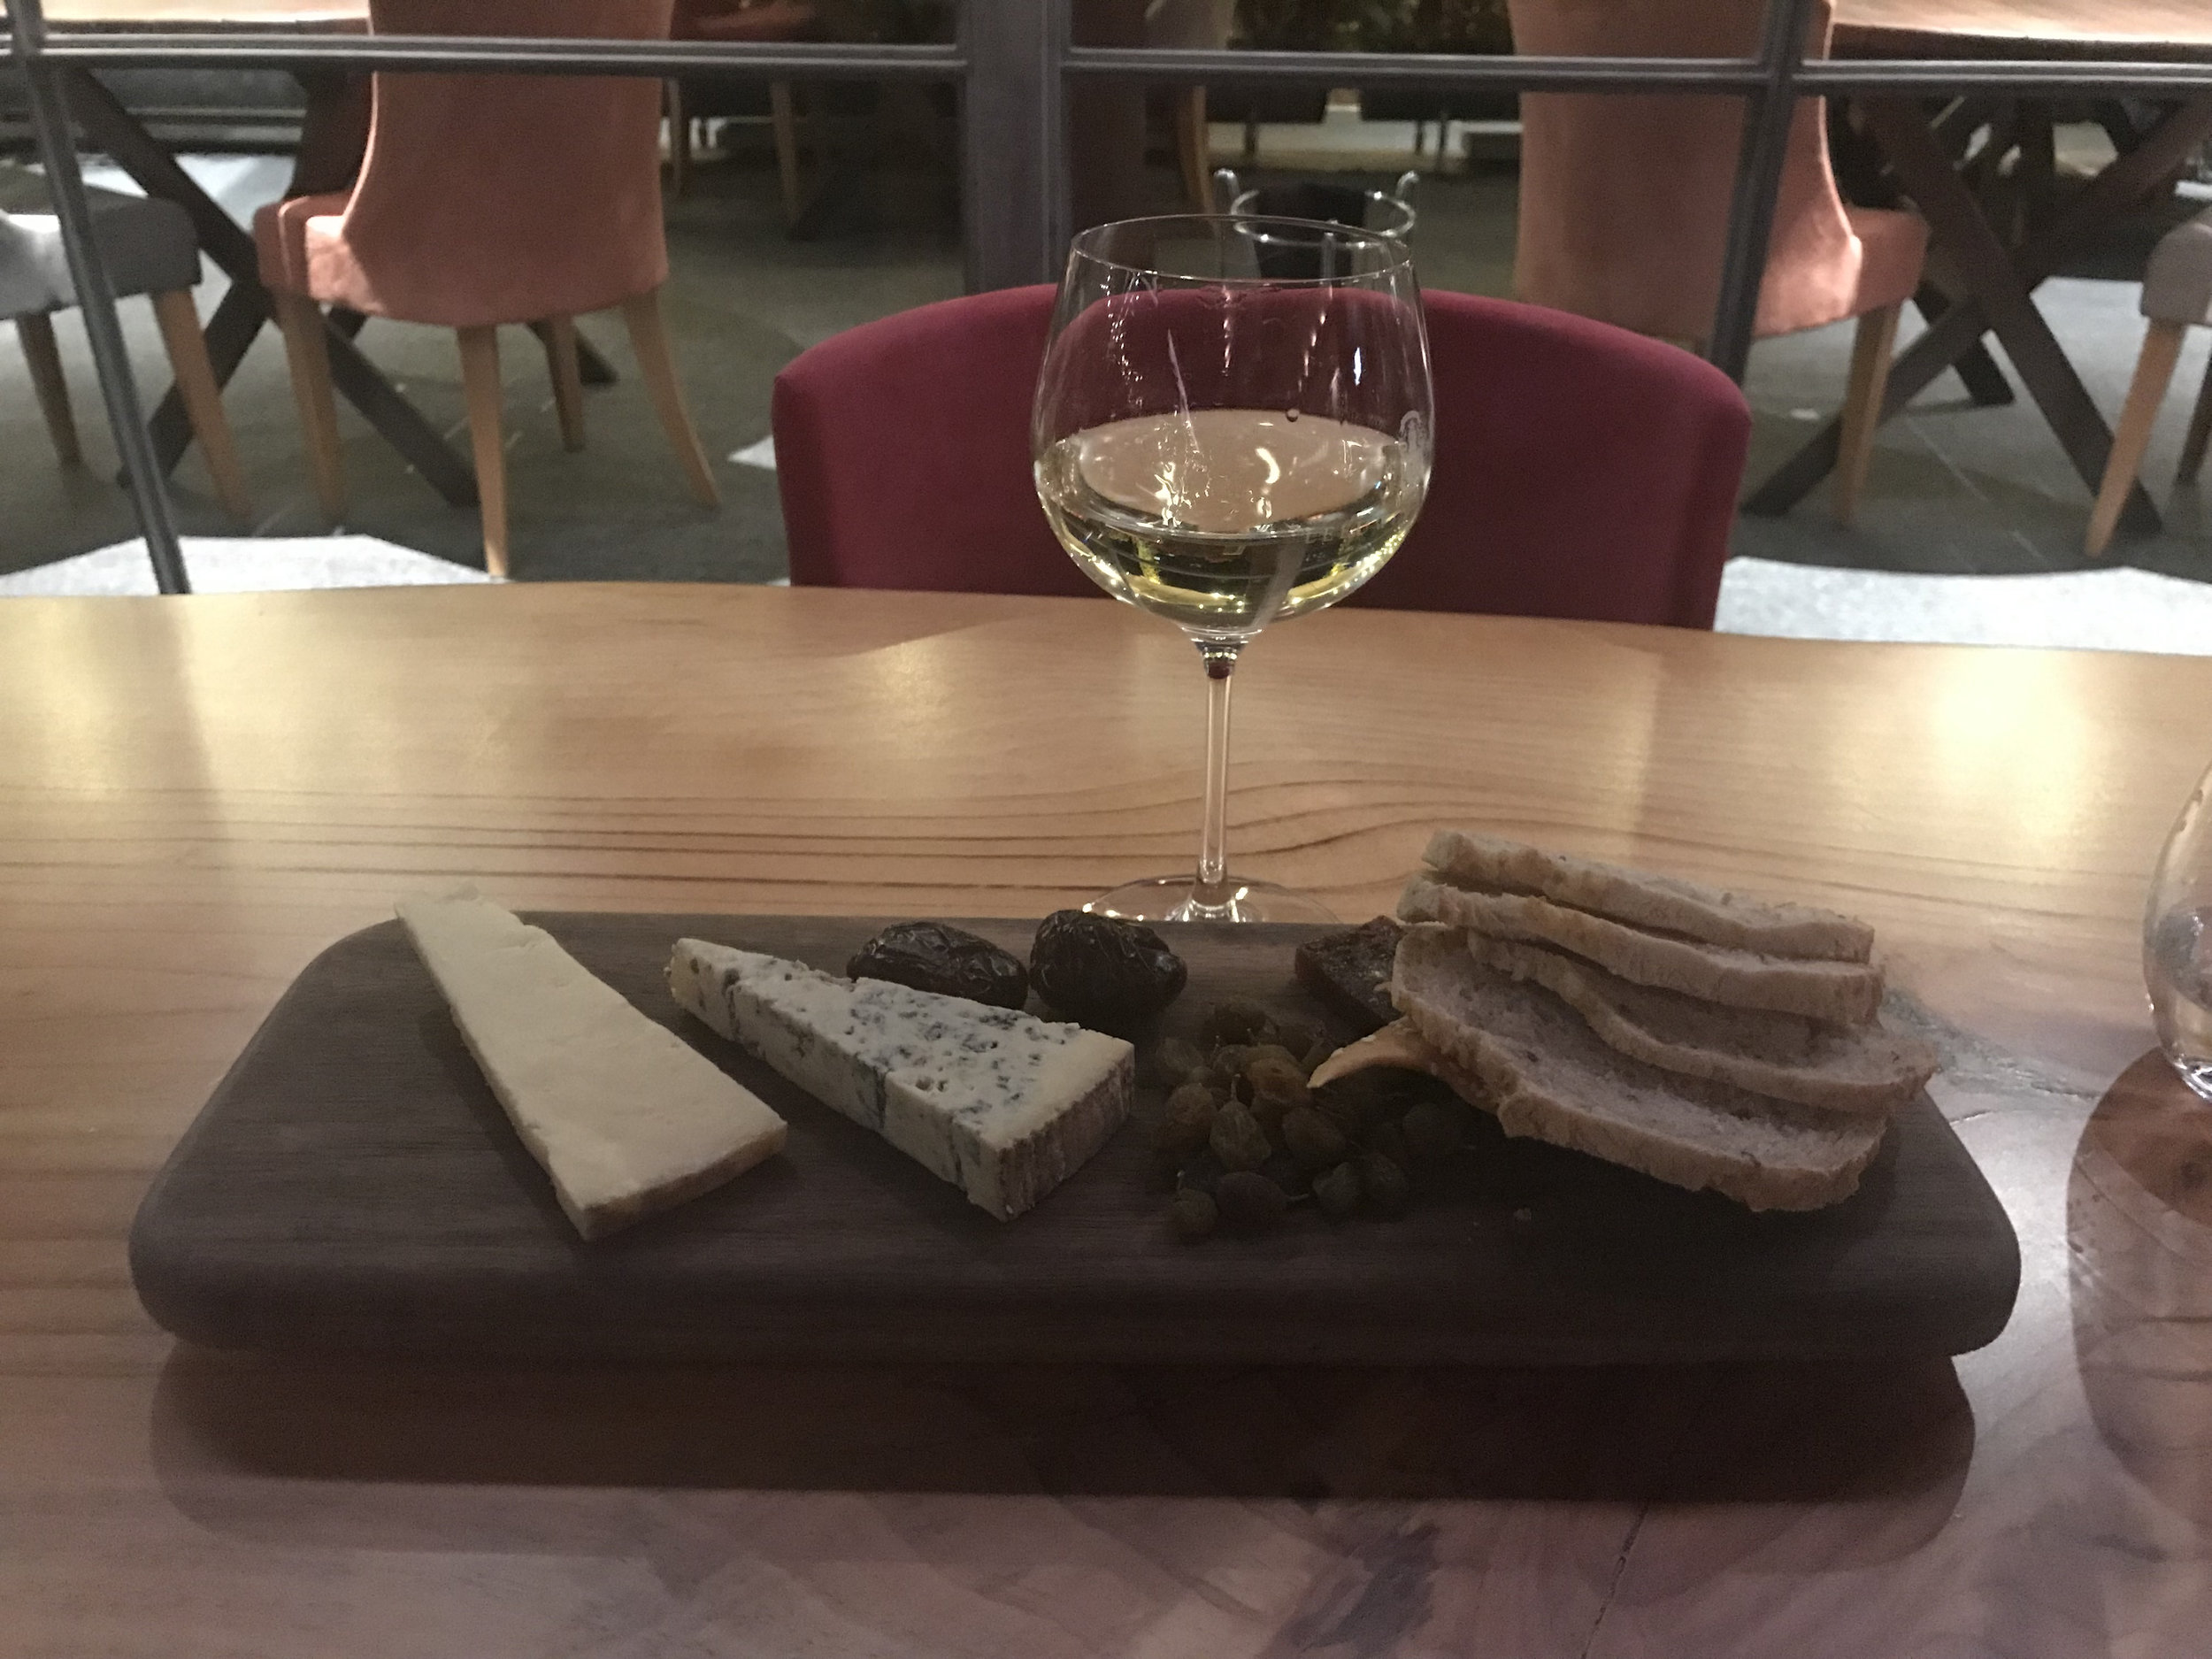 A cheese plate with Chardonnay.